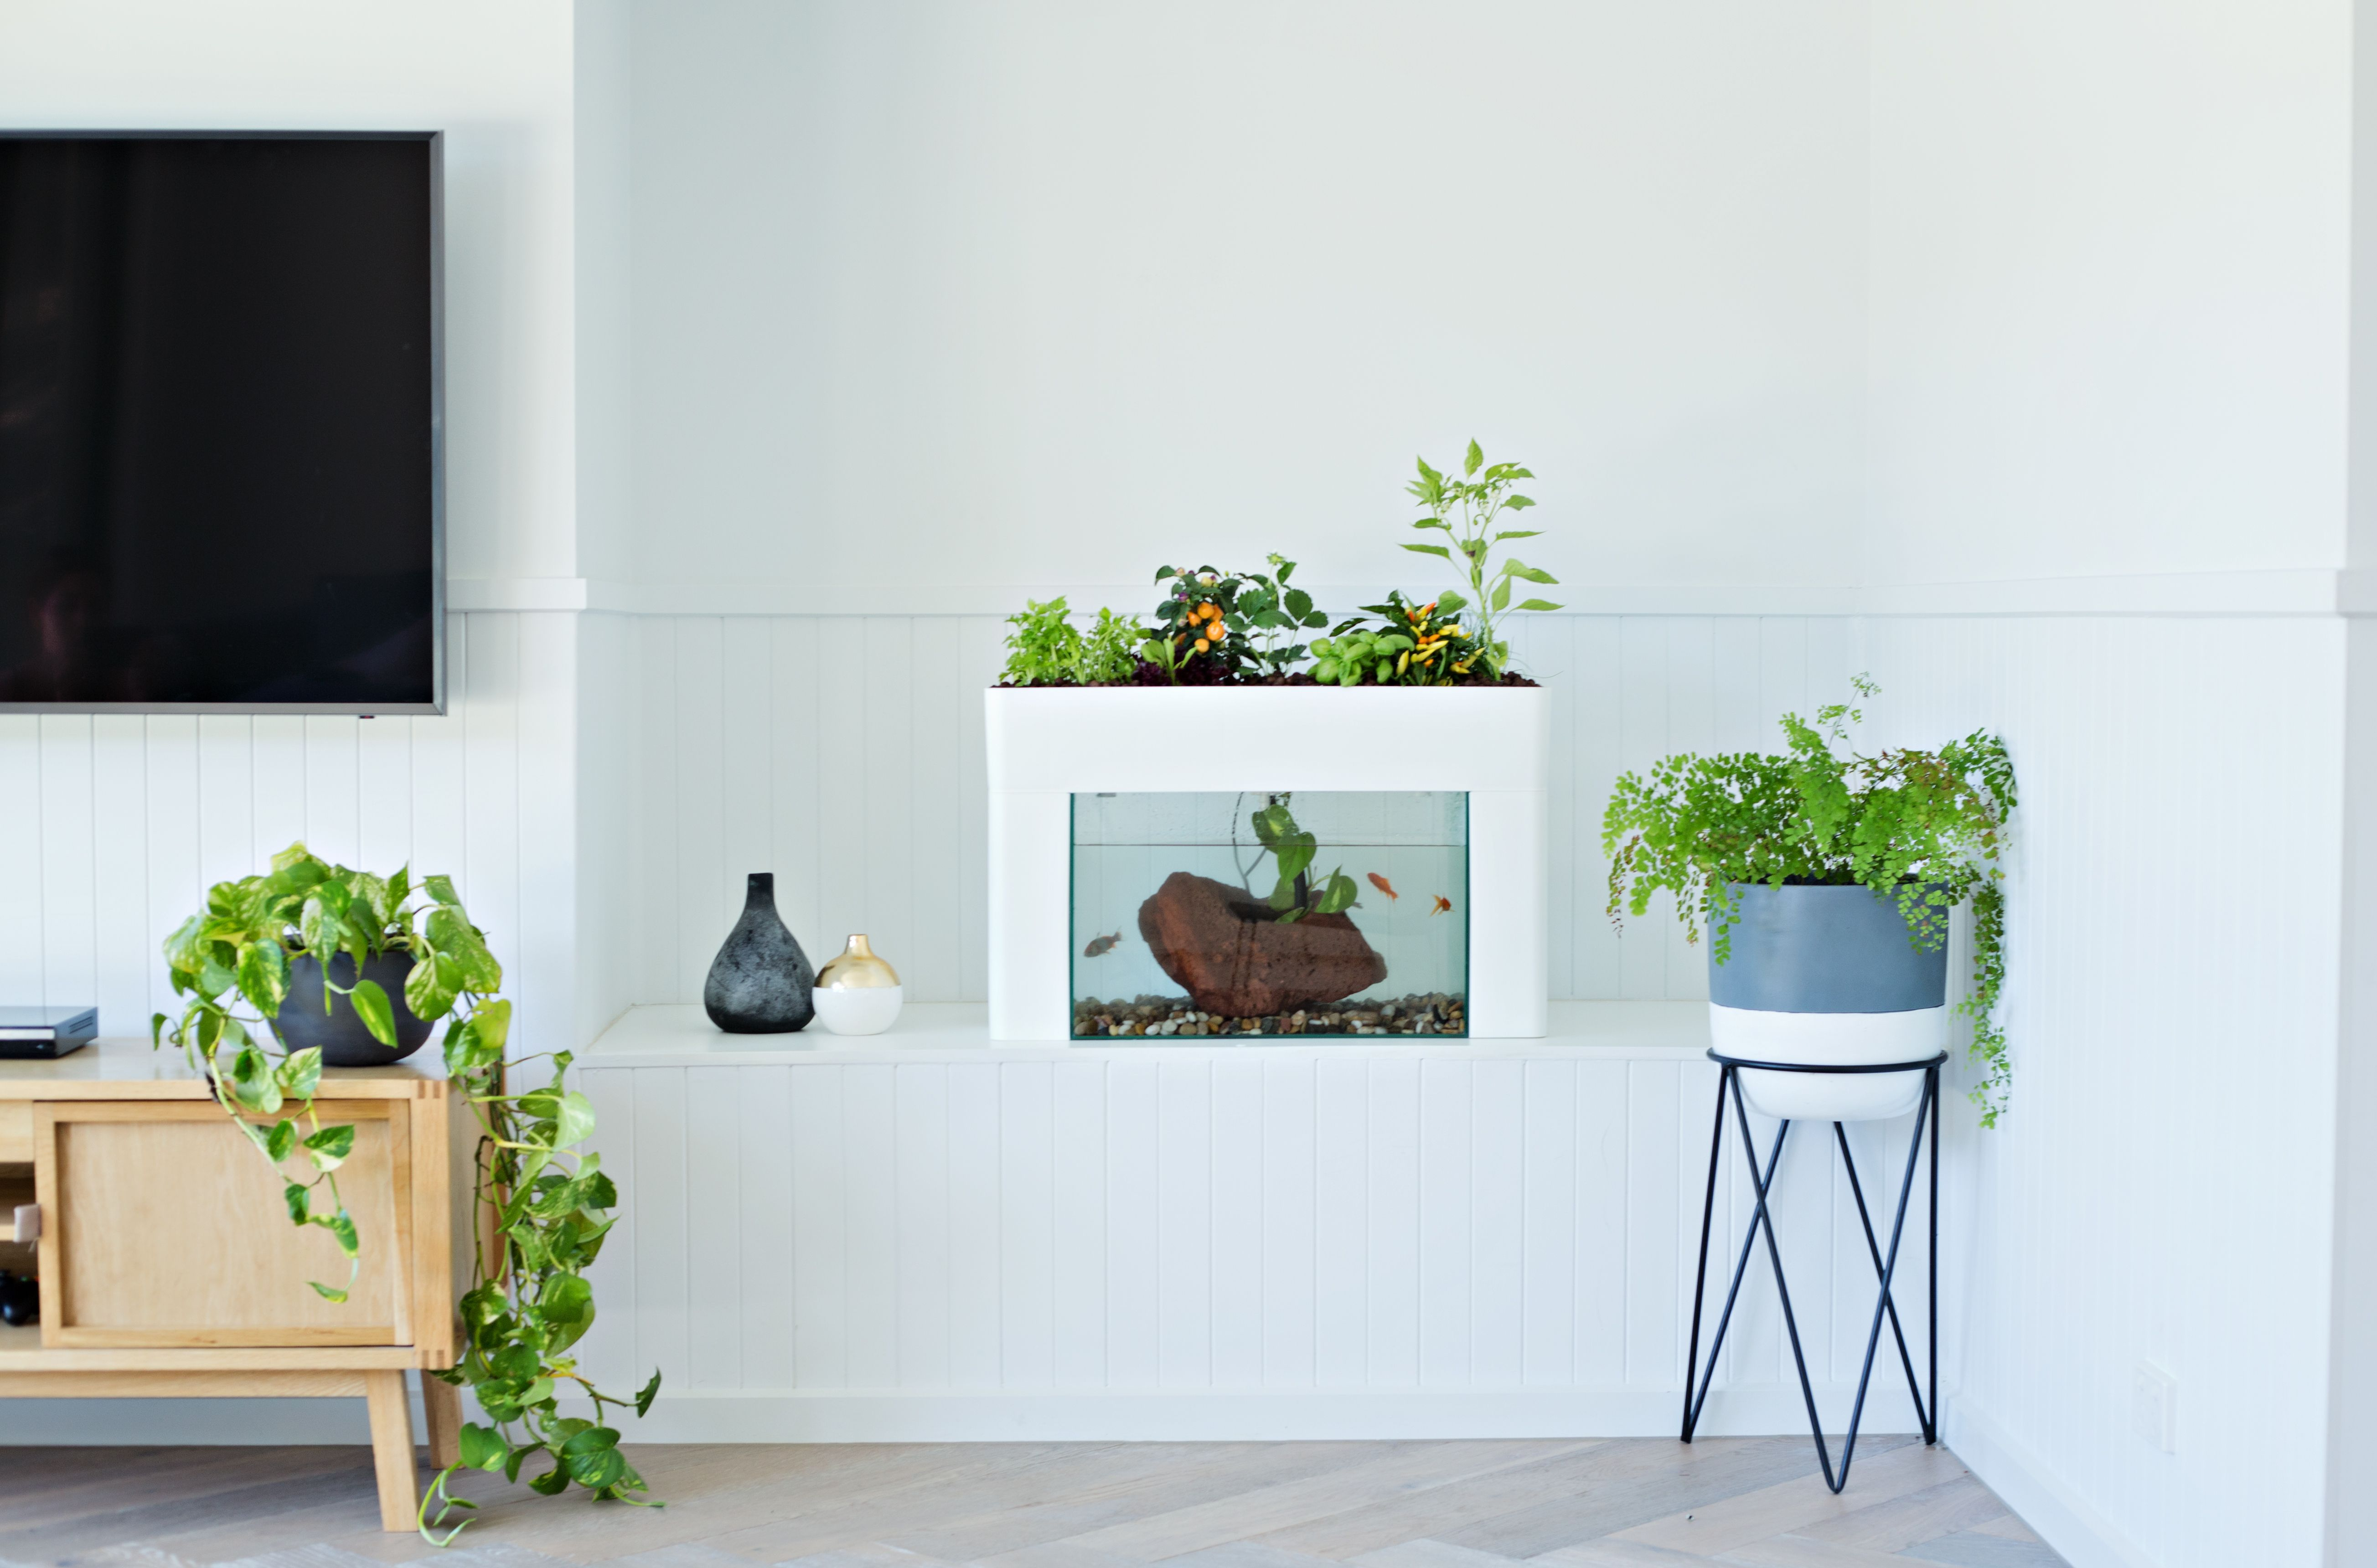 Add some life to your living room The self cleaning Aquasprout will